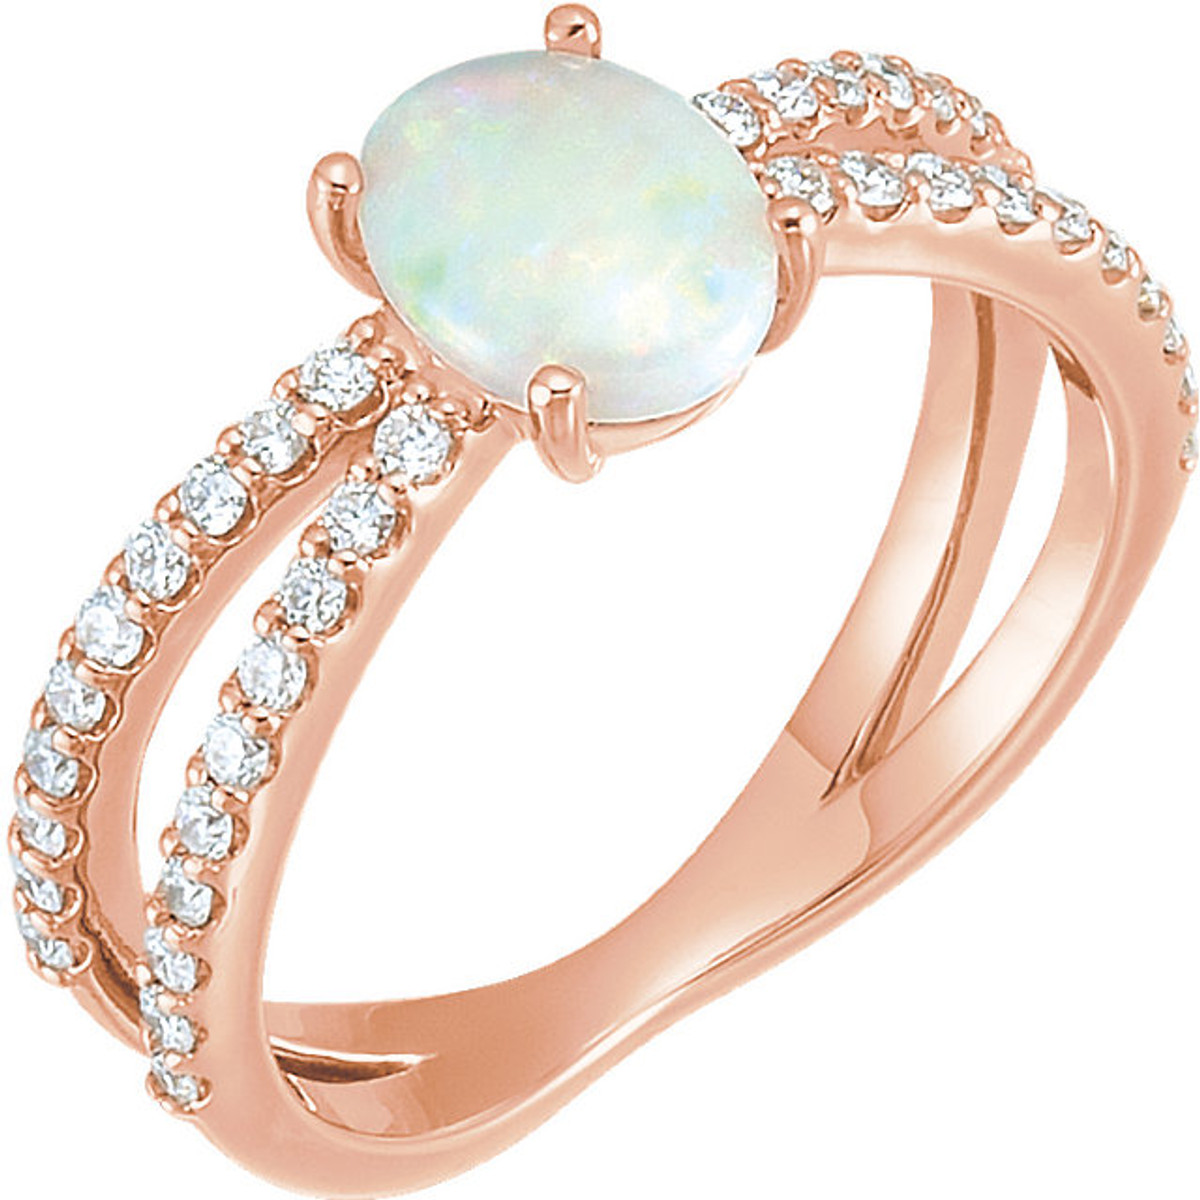 Rose Gold Opal Ring Princess Jewelry